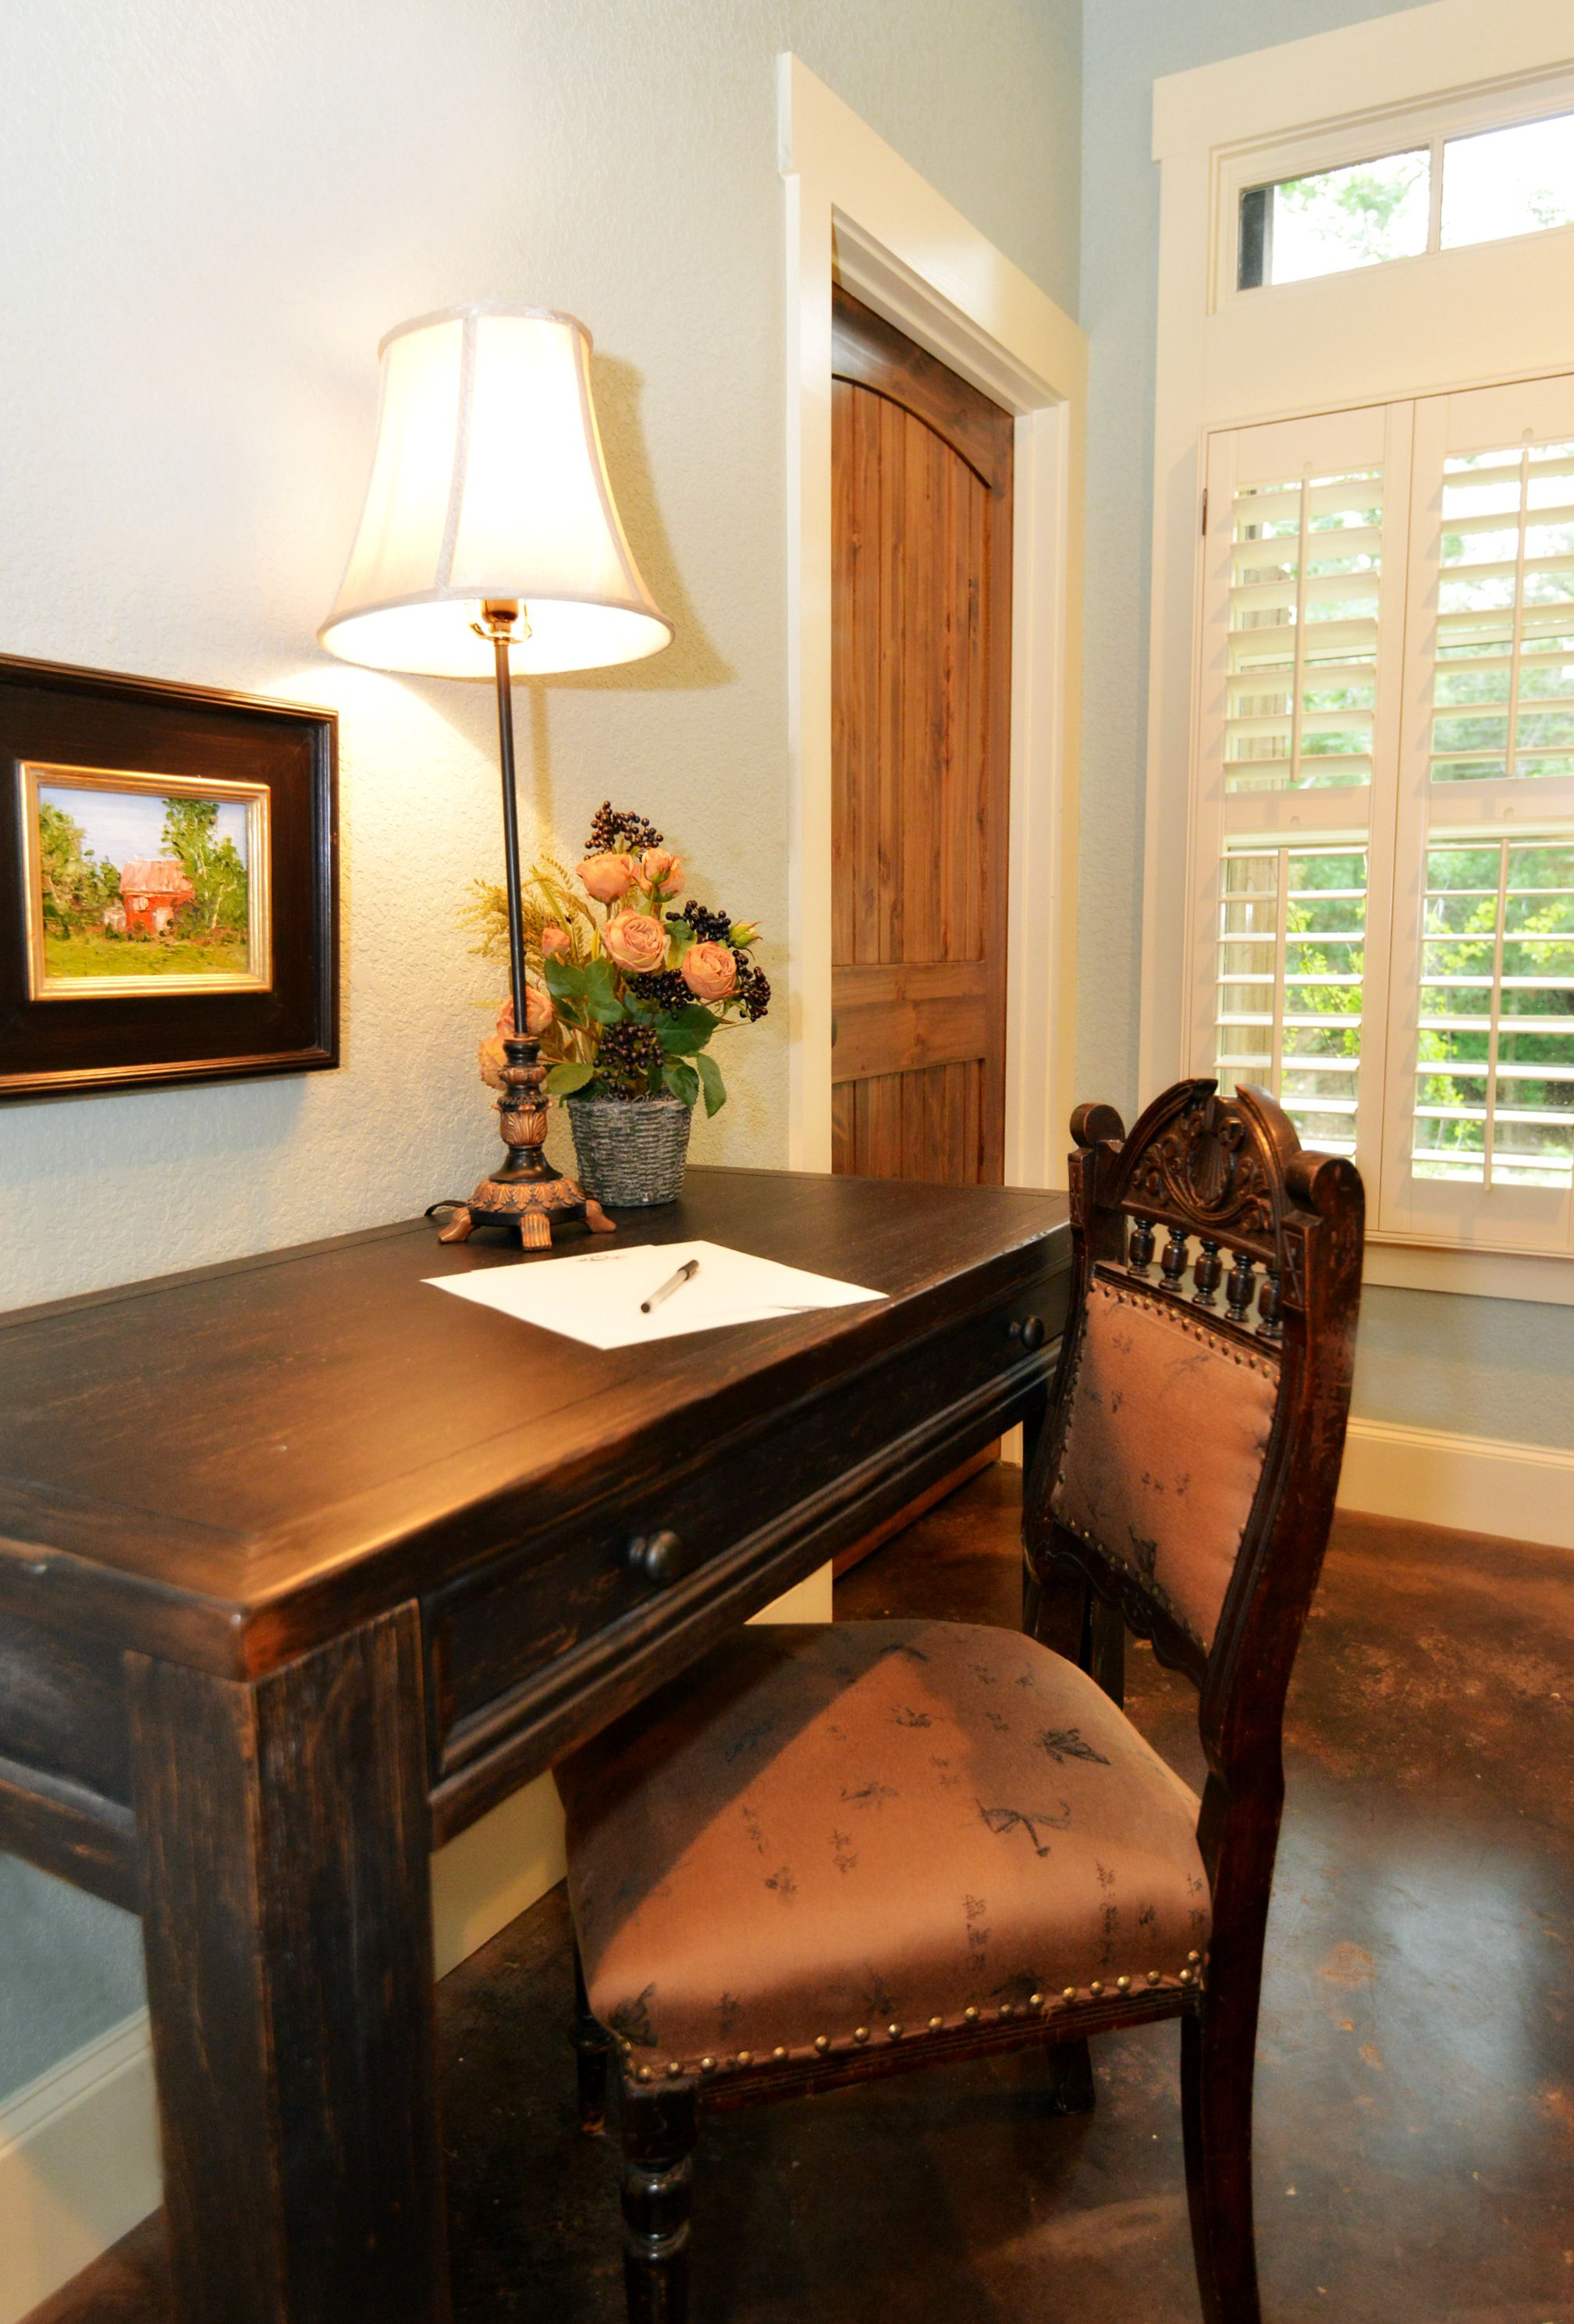 fredericksburg booking at the breakfast a us quarry of gallery hotel image bed barn this tx and property com